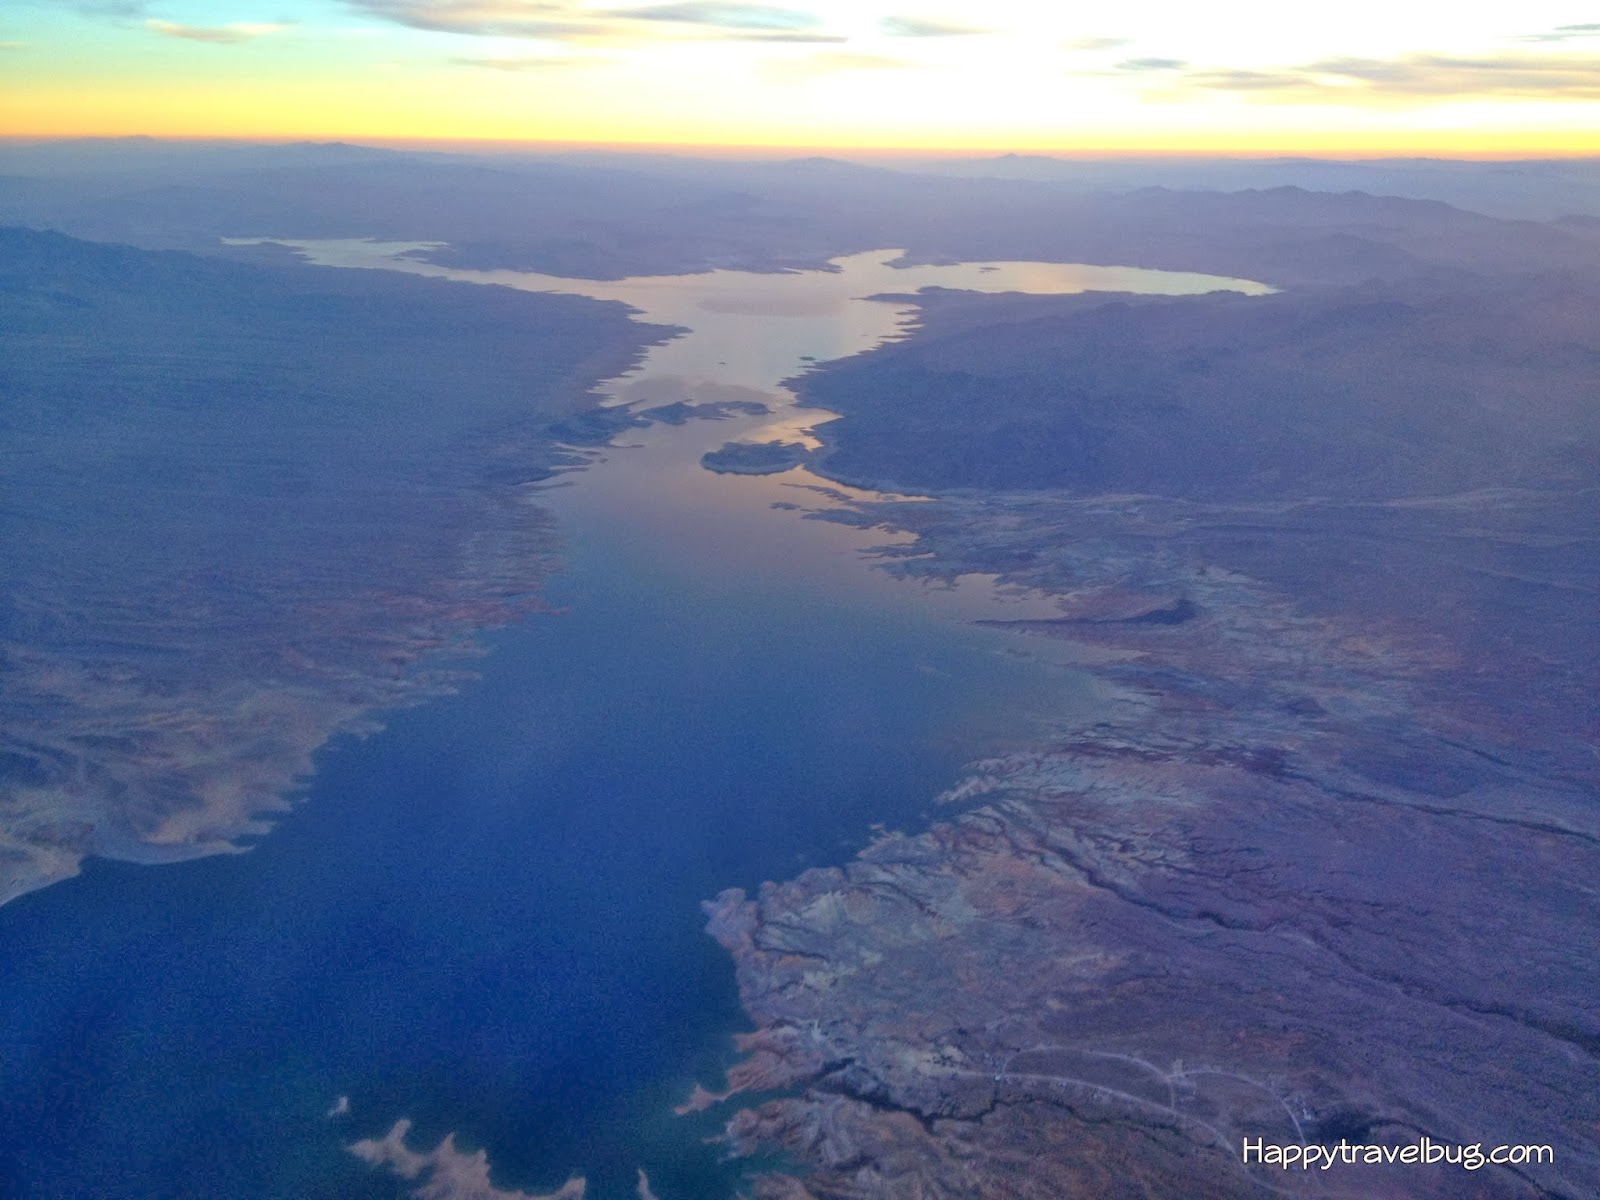 Lake and sunset from my airplane...Happytravelbug.com